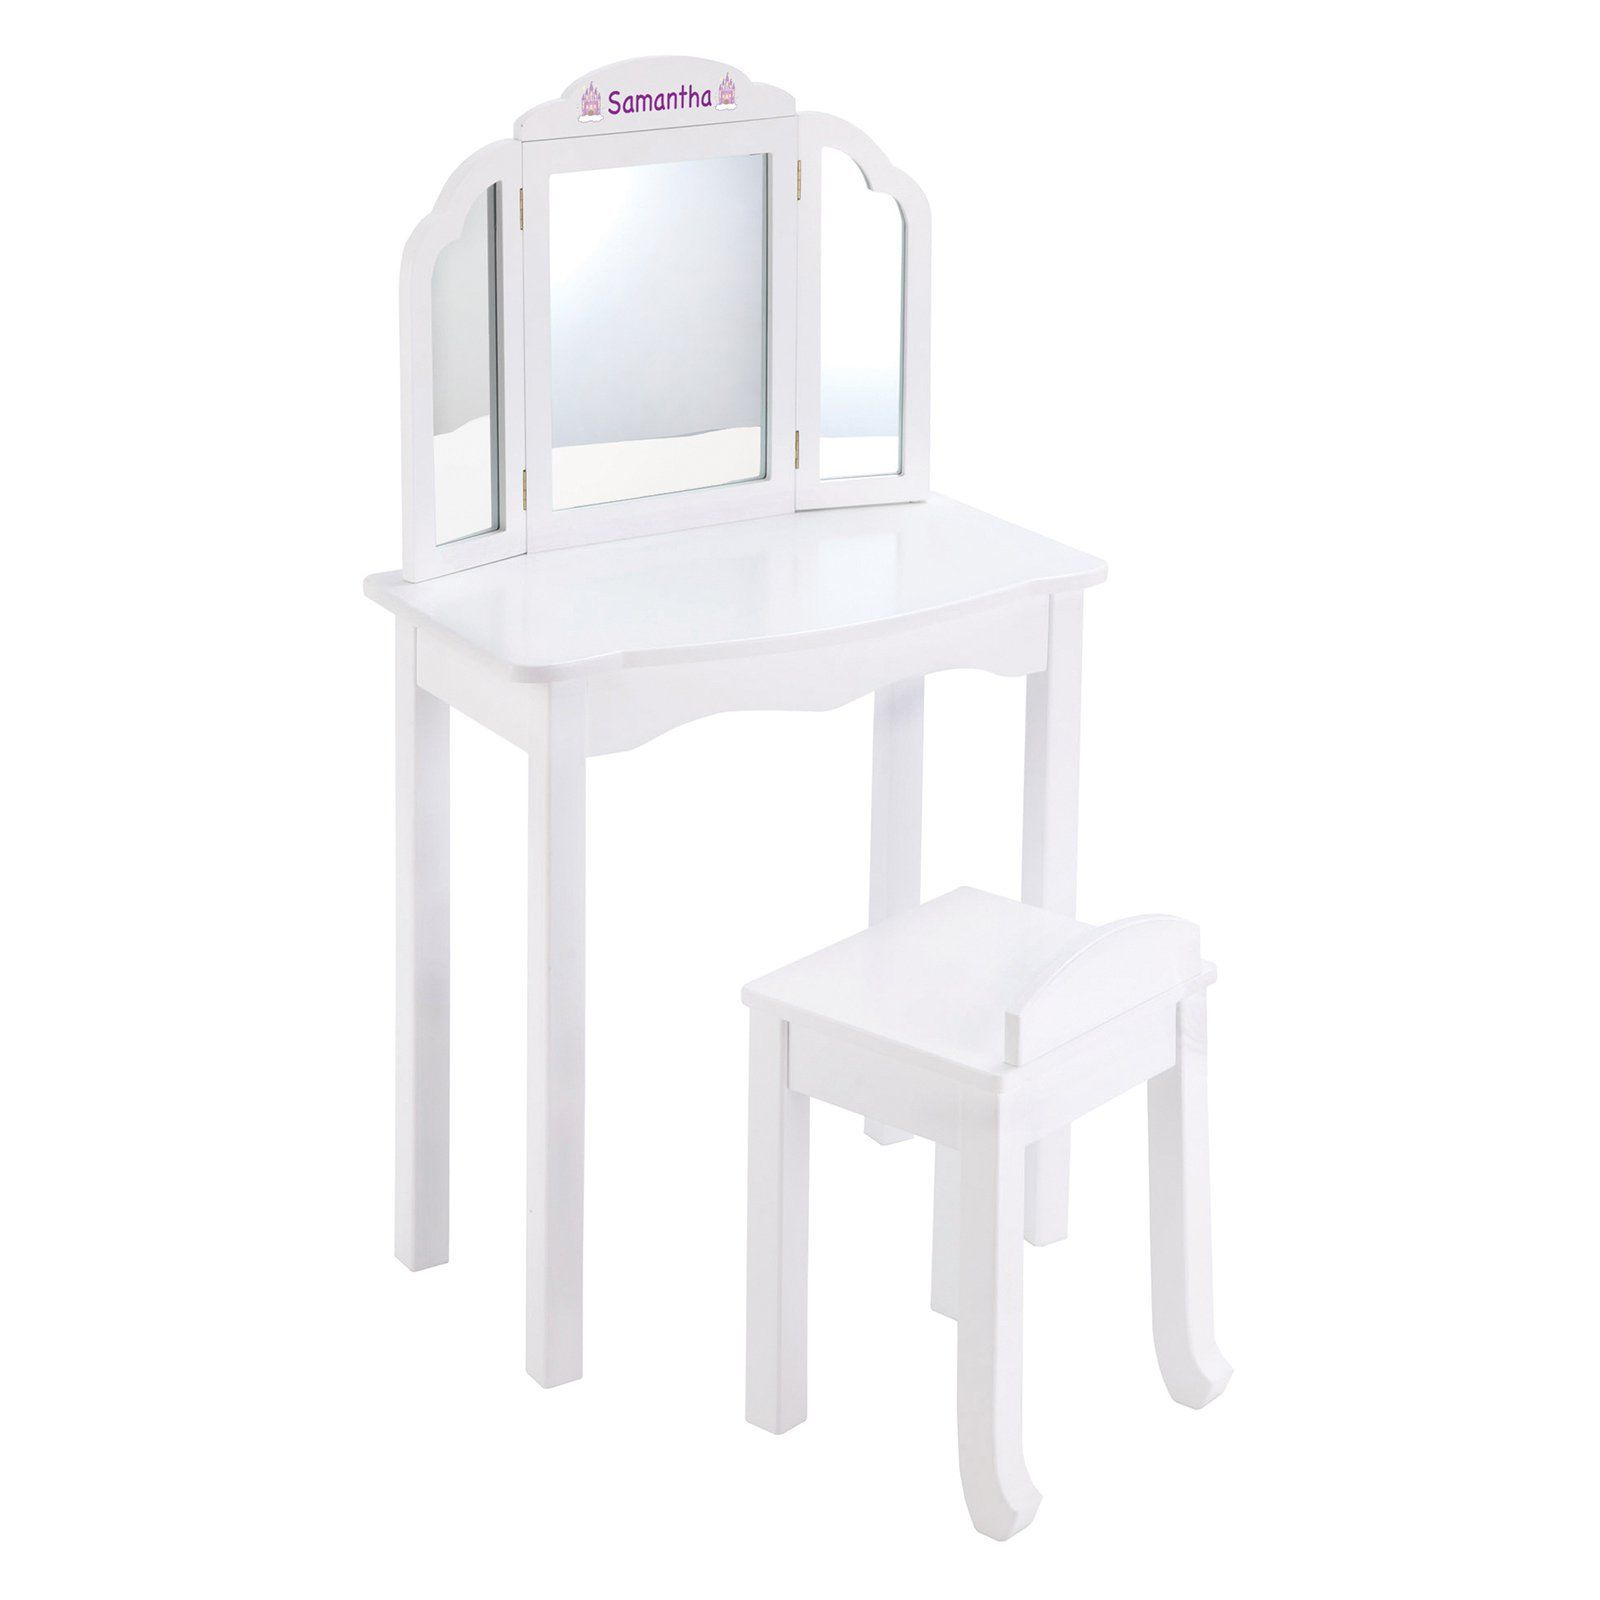 Guidecraft Expressions White Vanity With Personalization Purple